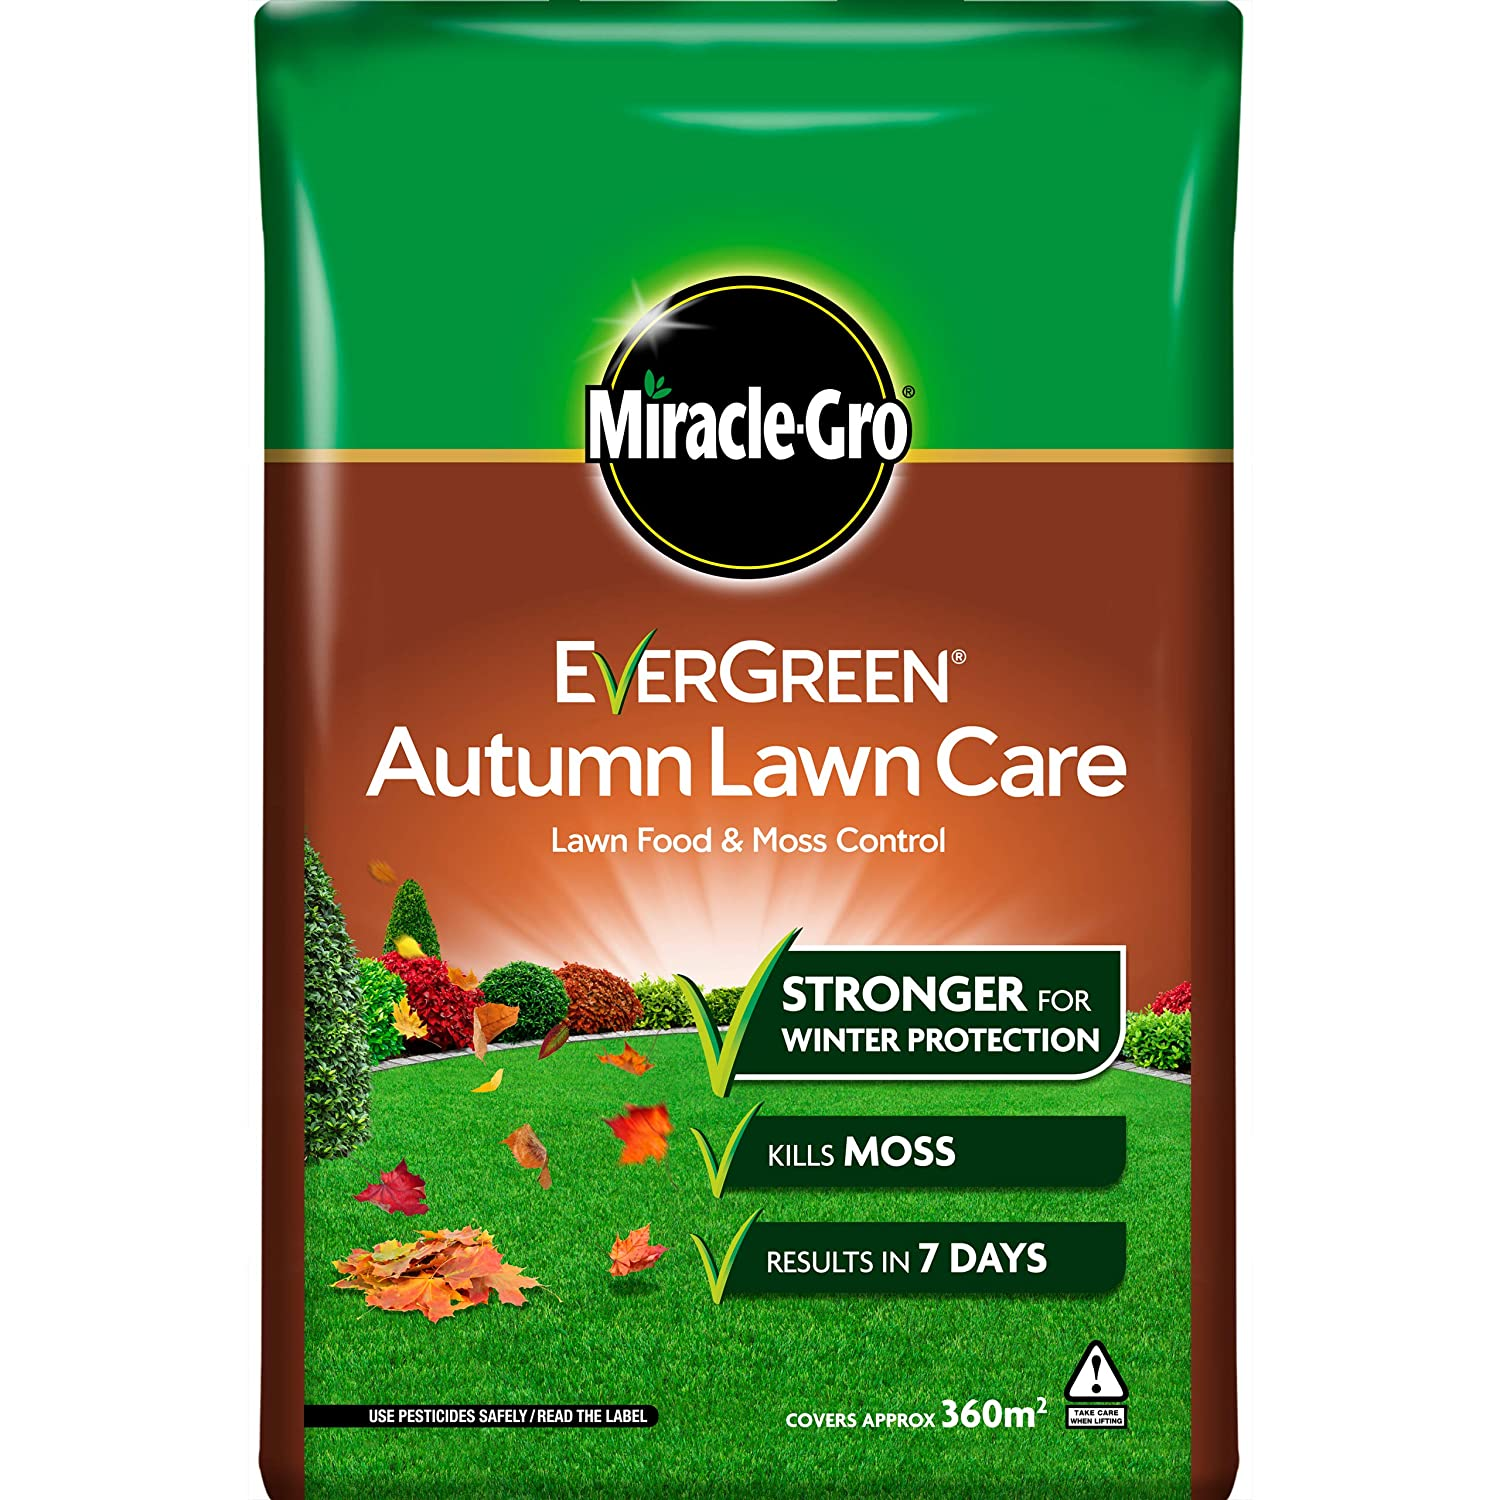 Miracle-Gro EverGreen Autumn Lawn Care 12 6kg - 360m2